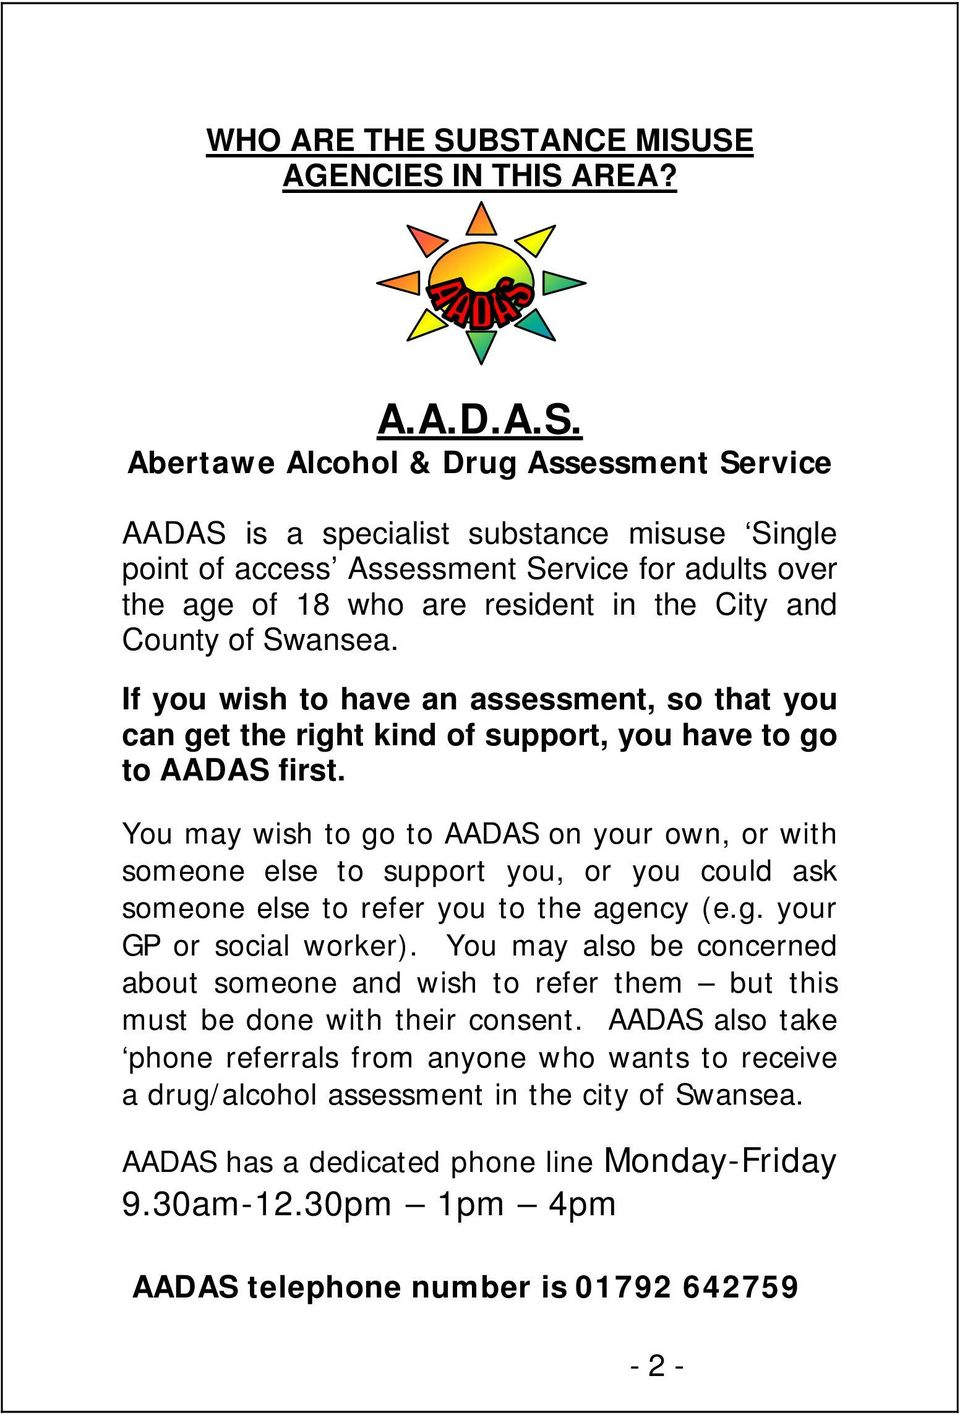 18 who are resident in the City and County of Swansea. If you wish to have an assessment, so that you can get the right kind of support, you have to go to AADAS first.